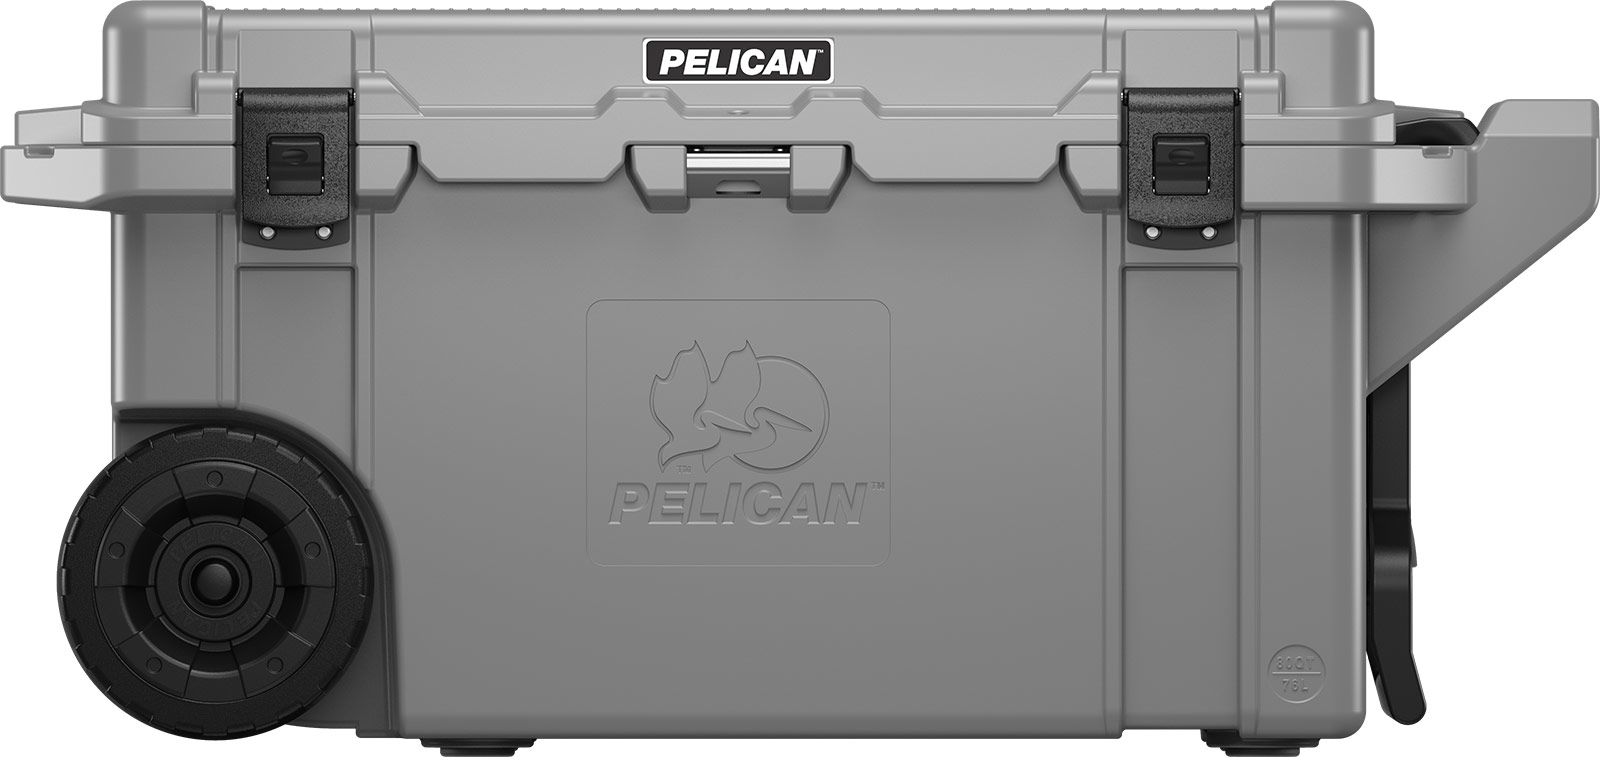 pelican 80qt cooler gray wheeled coolers